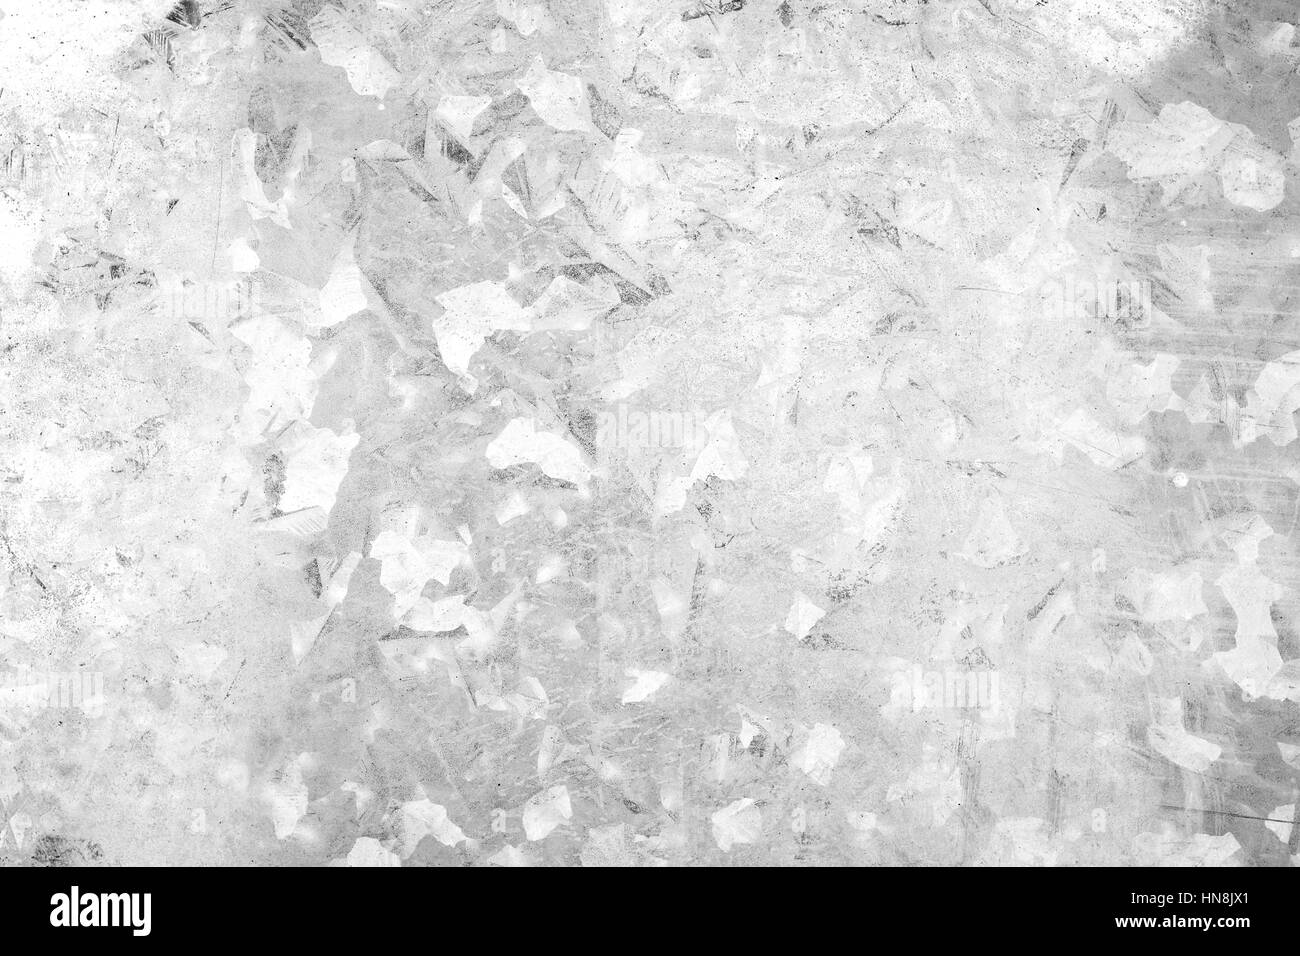 Close-up of a galvanized gray zinc plate texture background in black&white. - Stock Image